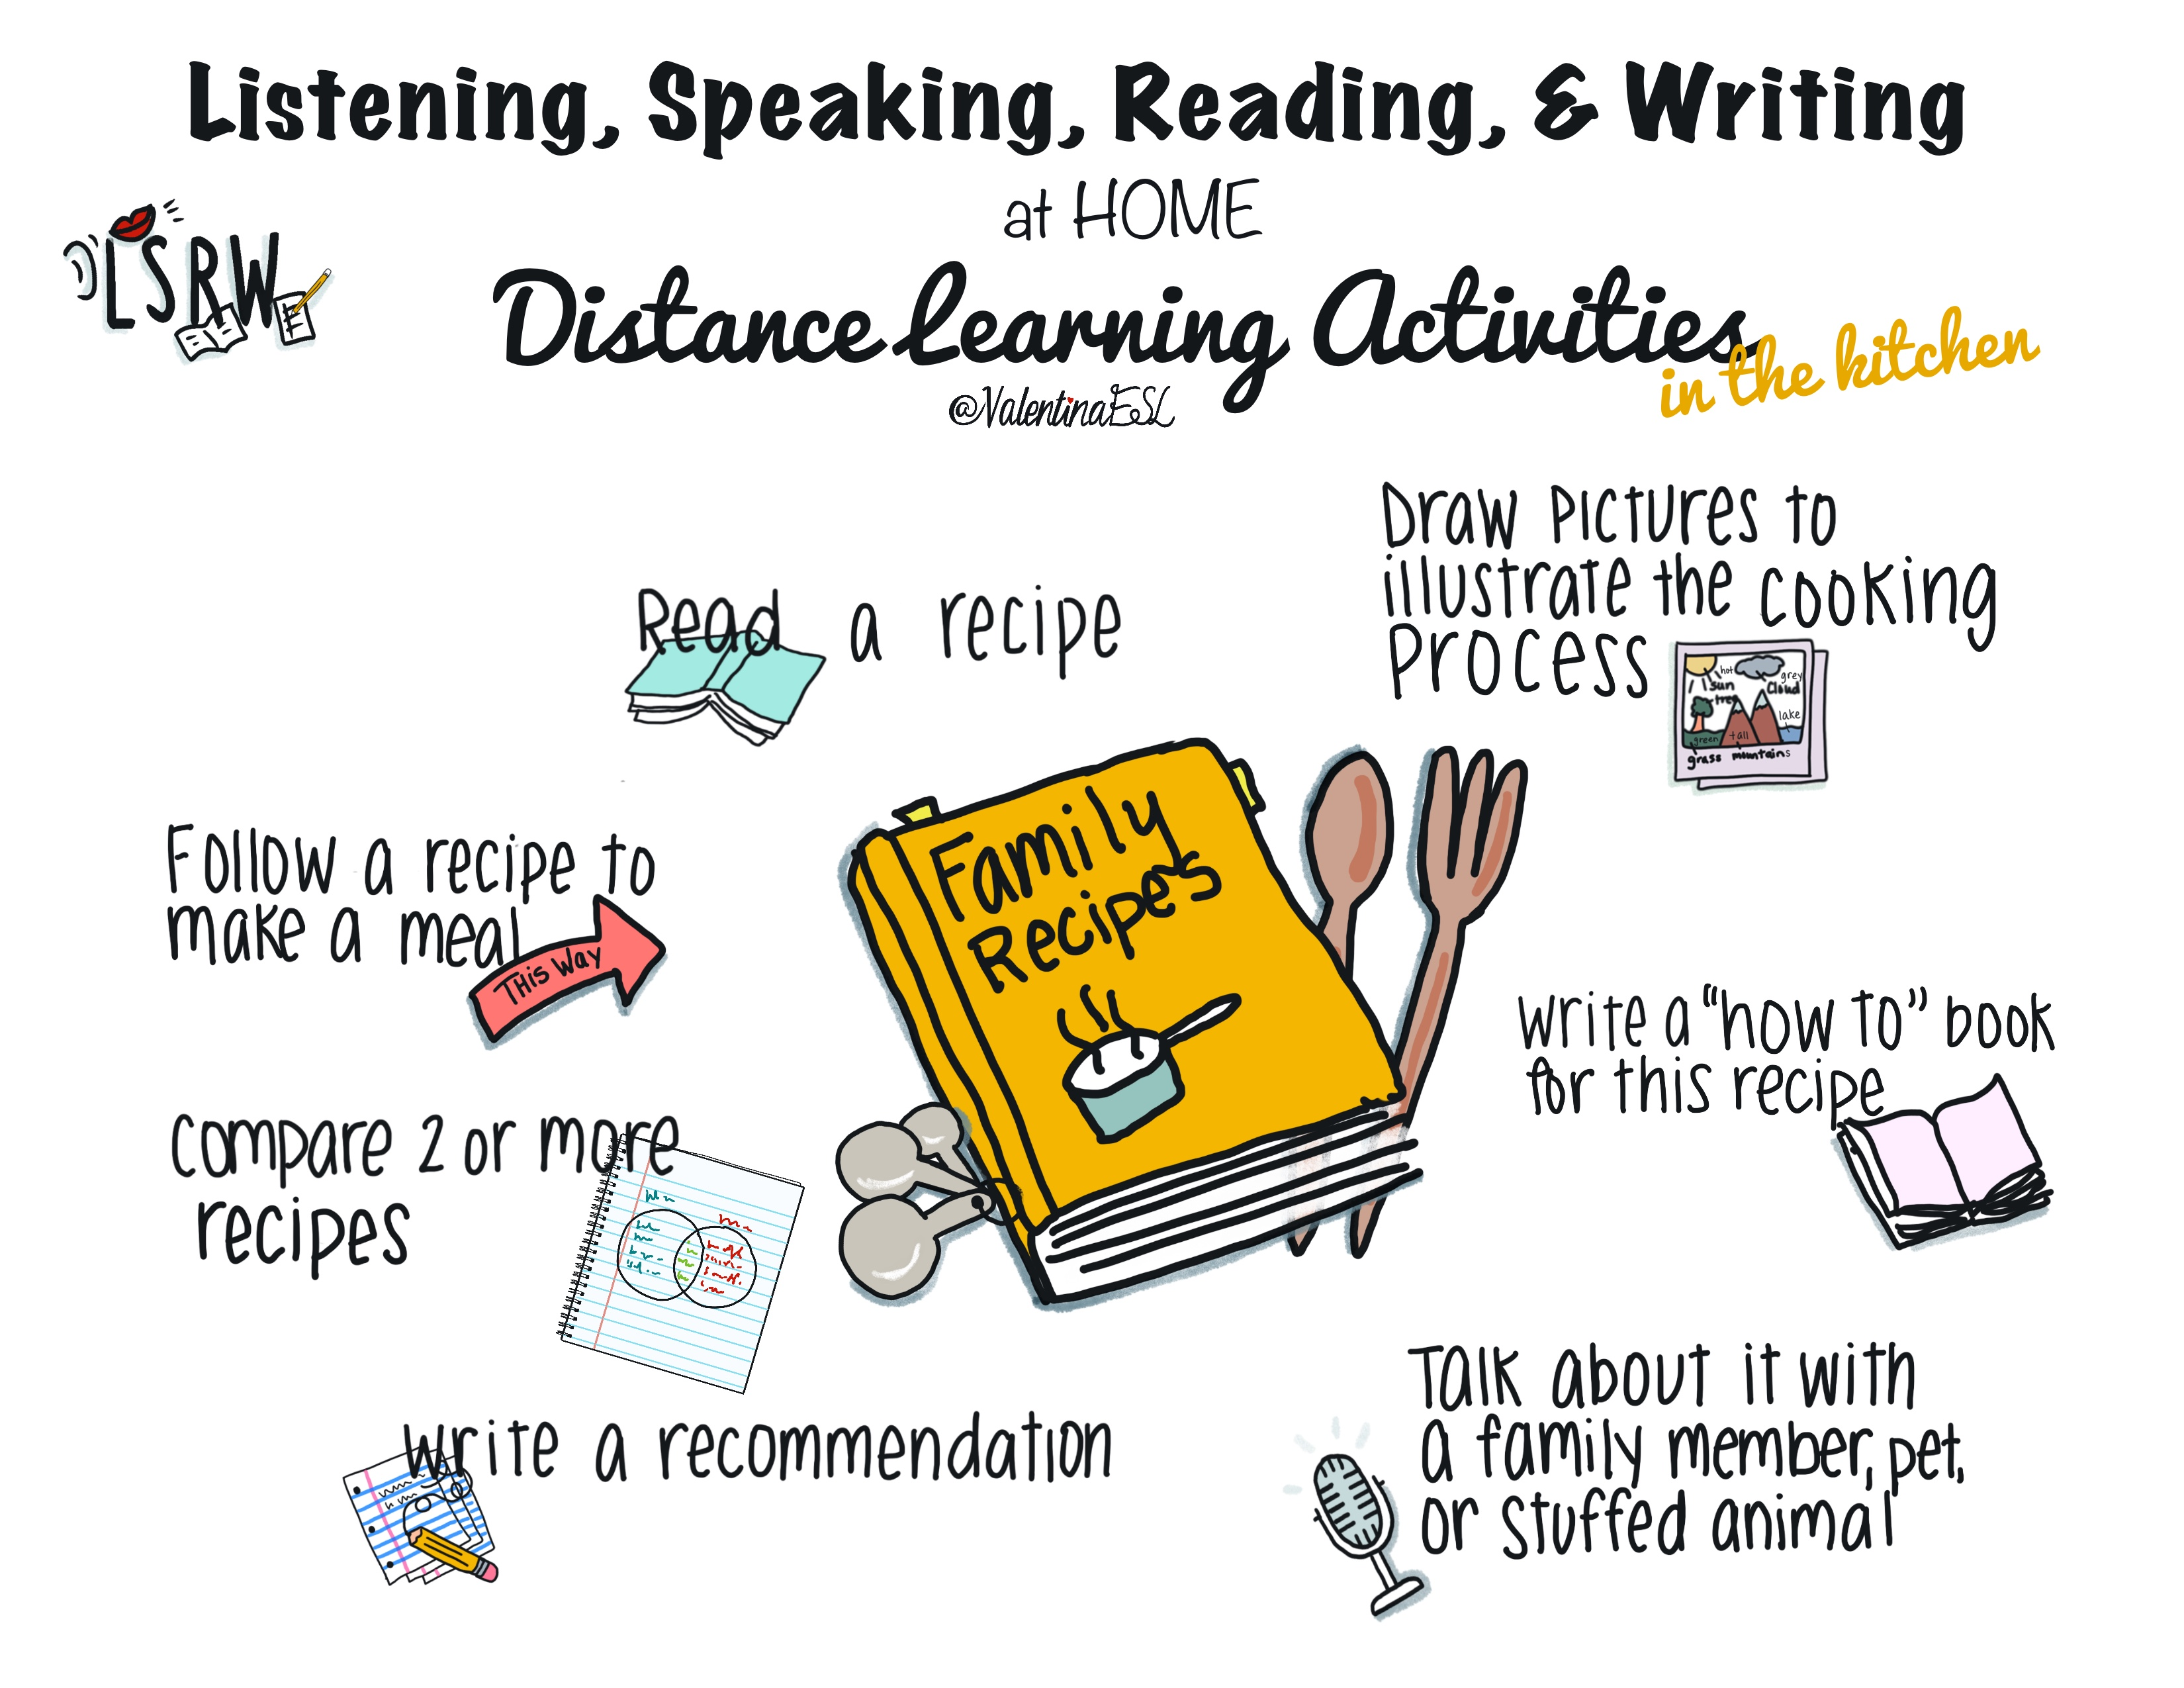 Offline Learning at Home: Ideas for English Language Learners | Colorín Colorado